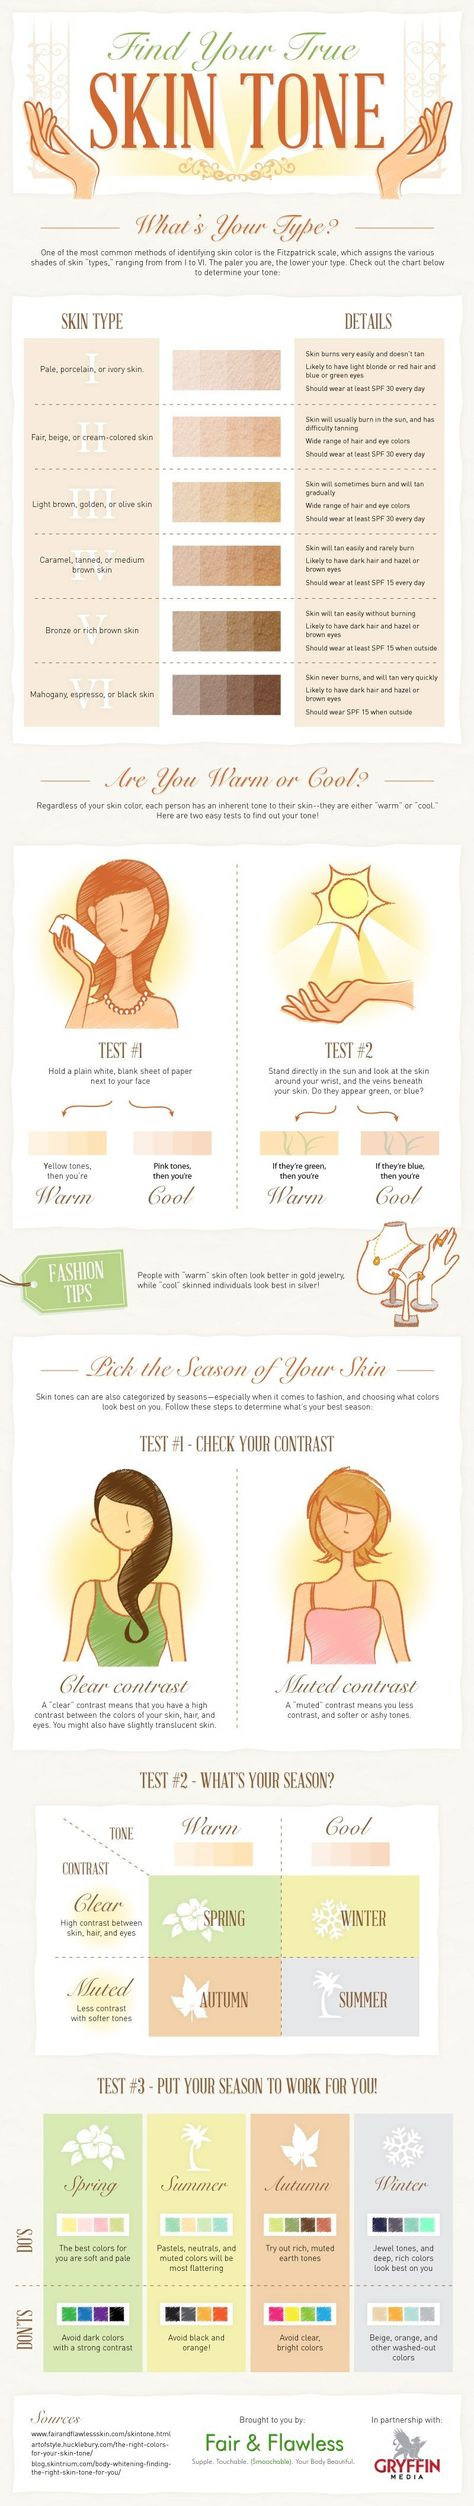 How To Find Your True Skin Tone   allure.com